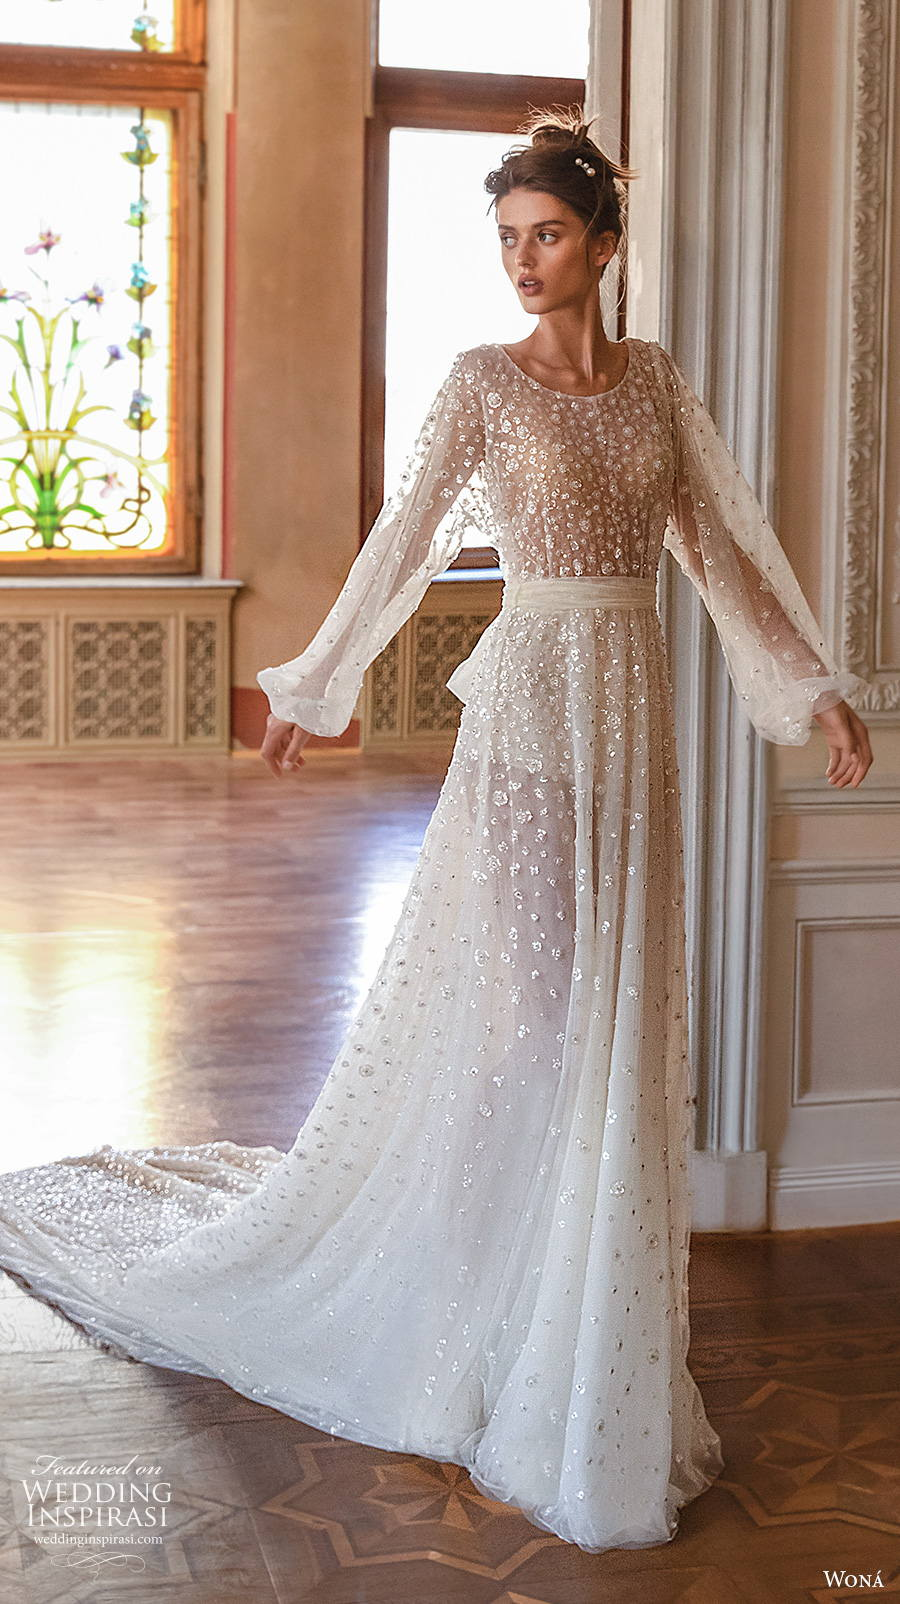 wona concept 2021 romance bridal long bishop sleeves jewel neck full embellishment romantic soft a  line wedding dress v back chapel train (5) mv